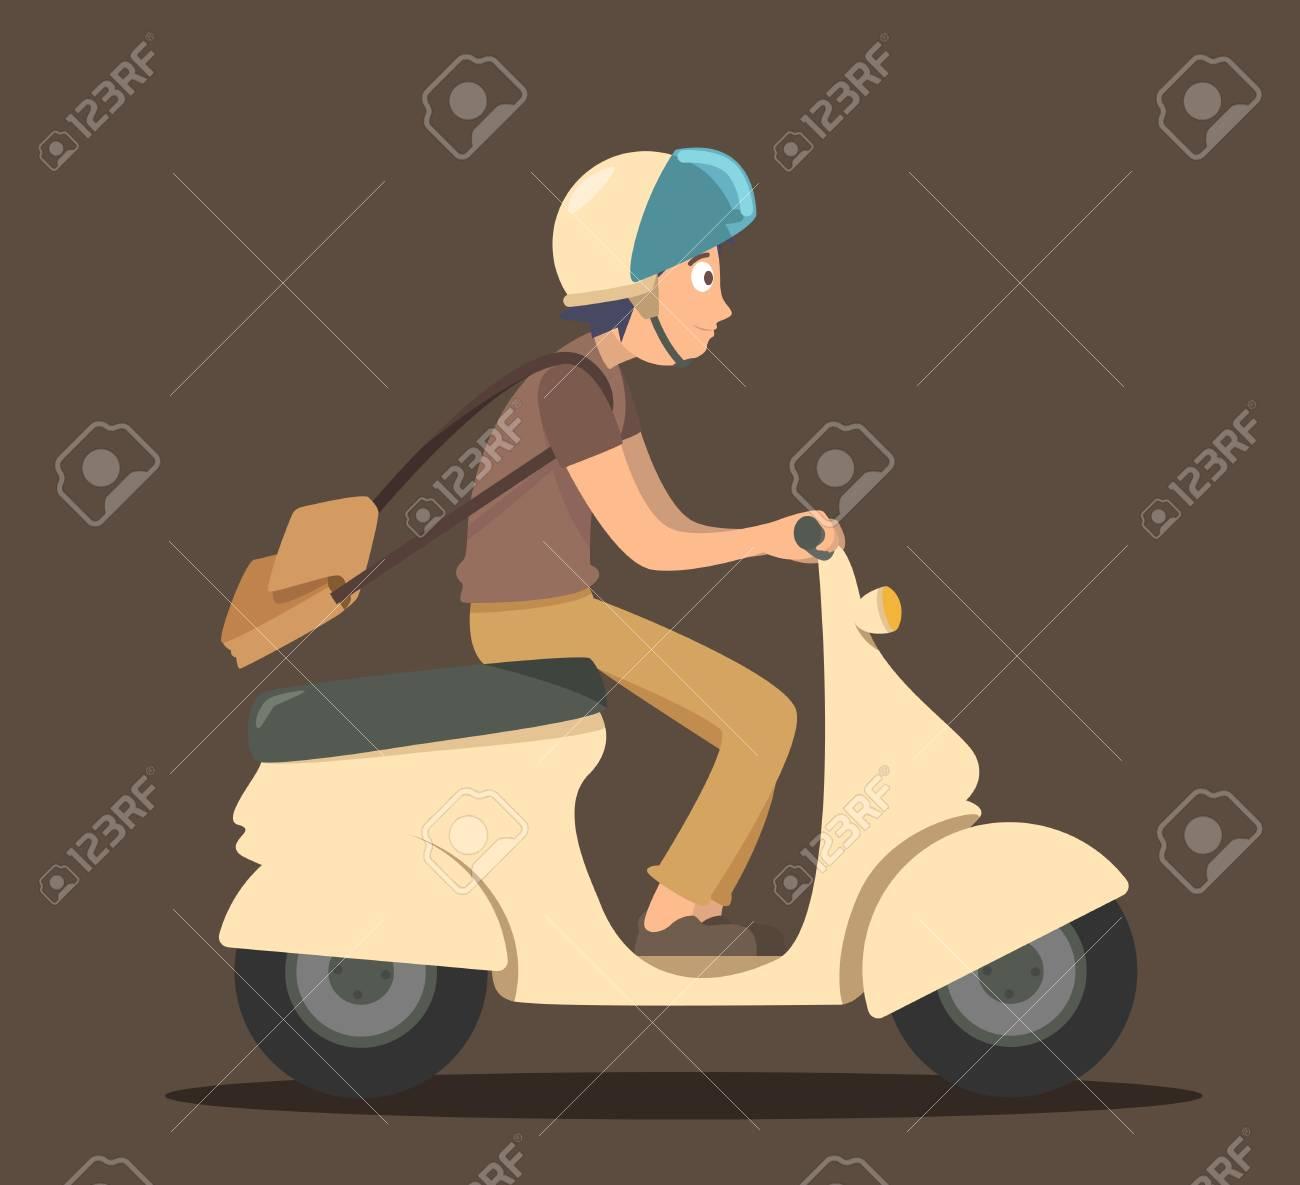 Boy ride scooter - 61815303